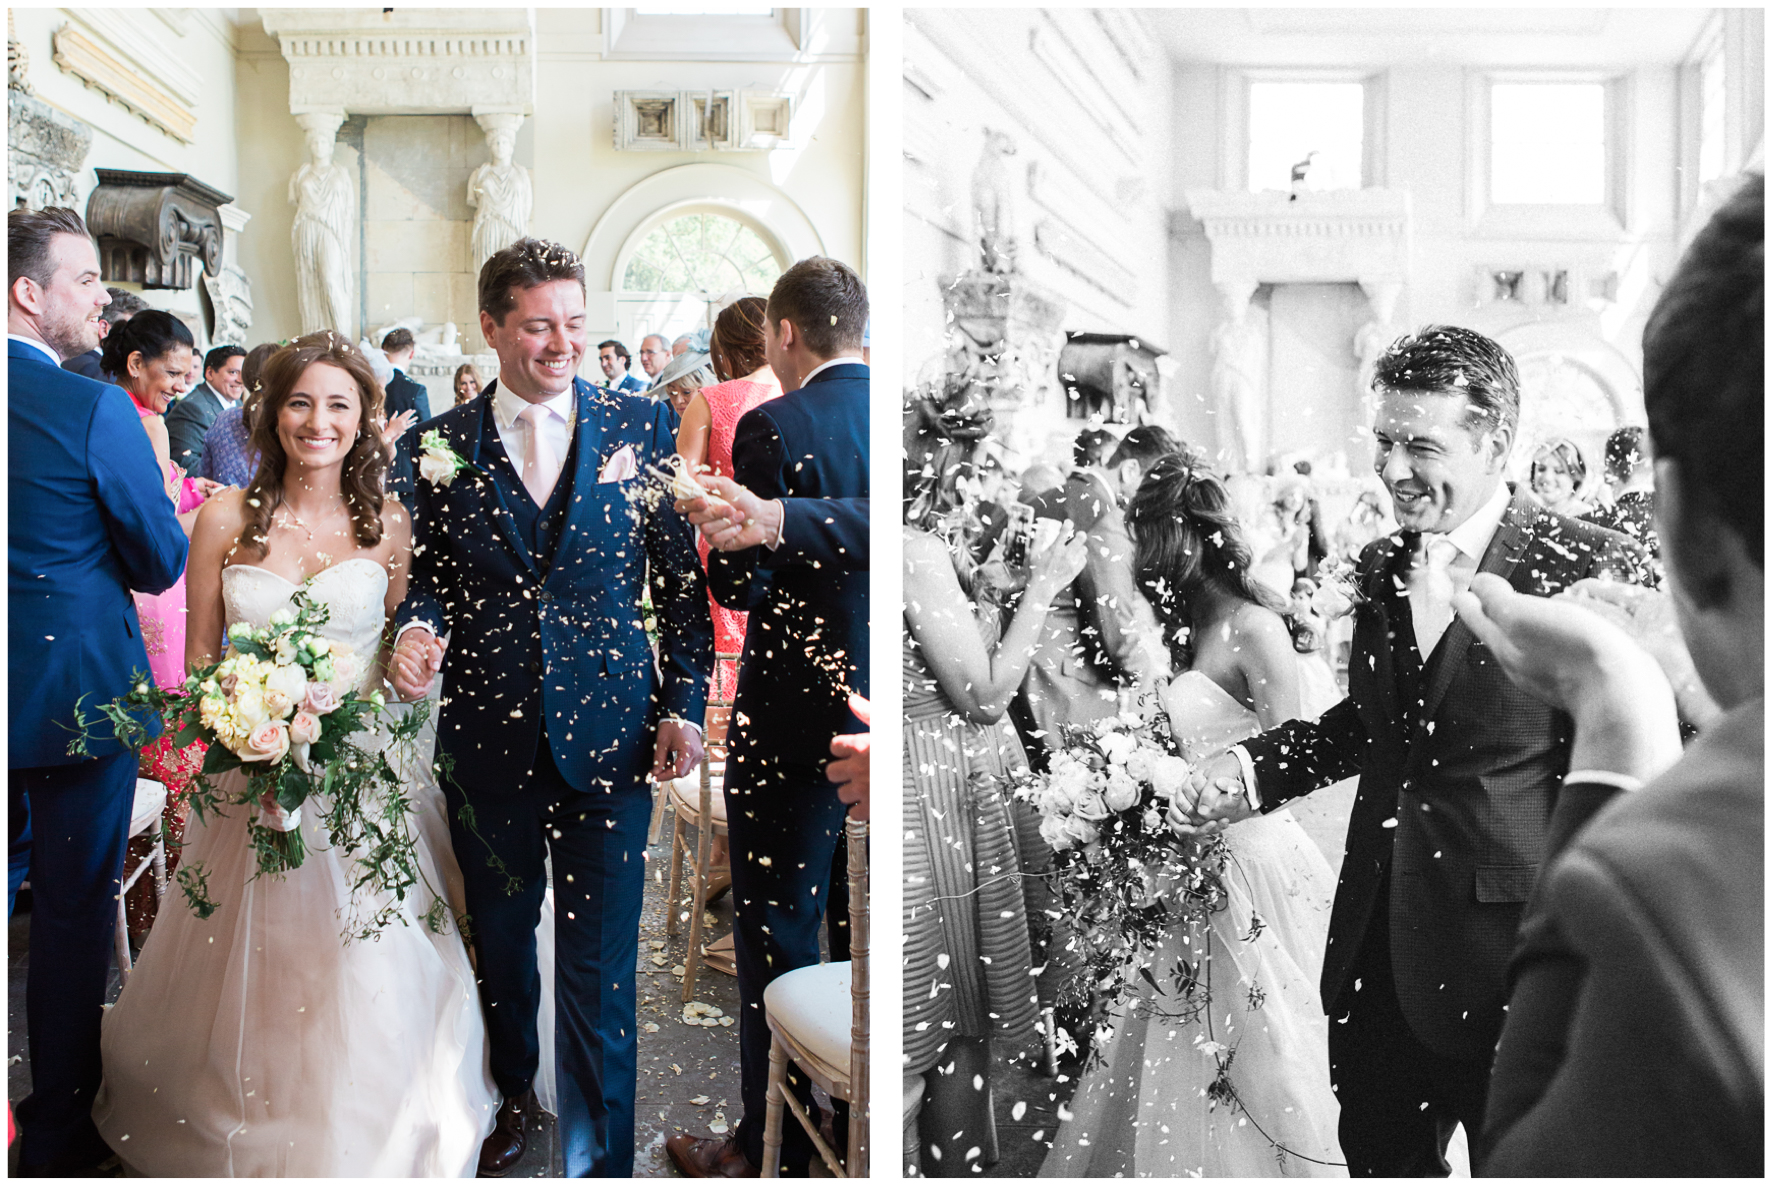 Aynhoe Park wedding ceremony, confetti